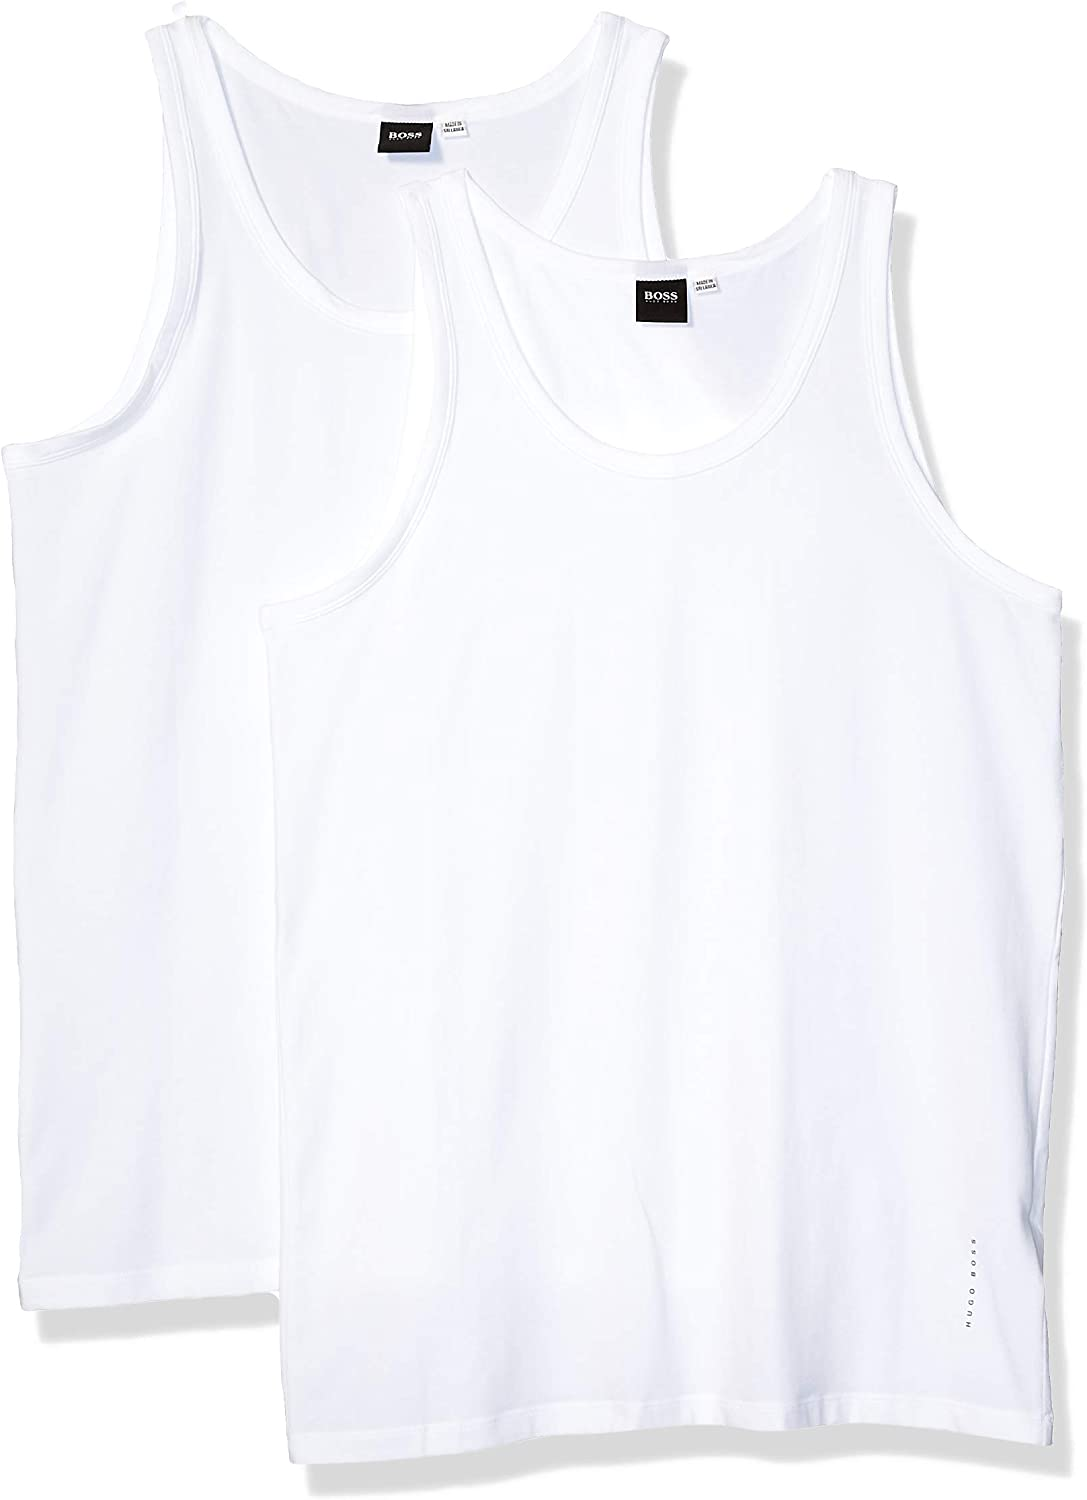 mens hugo boss vest tops